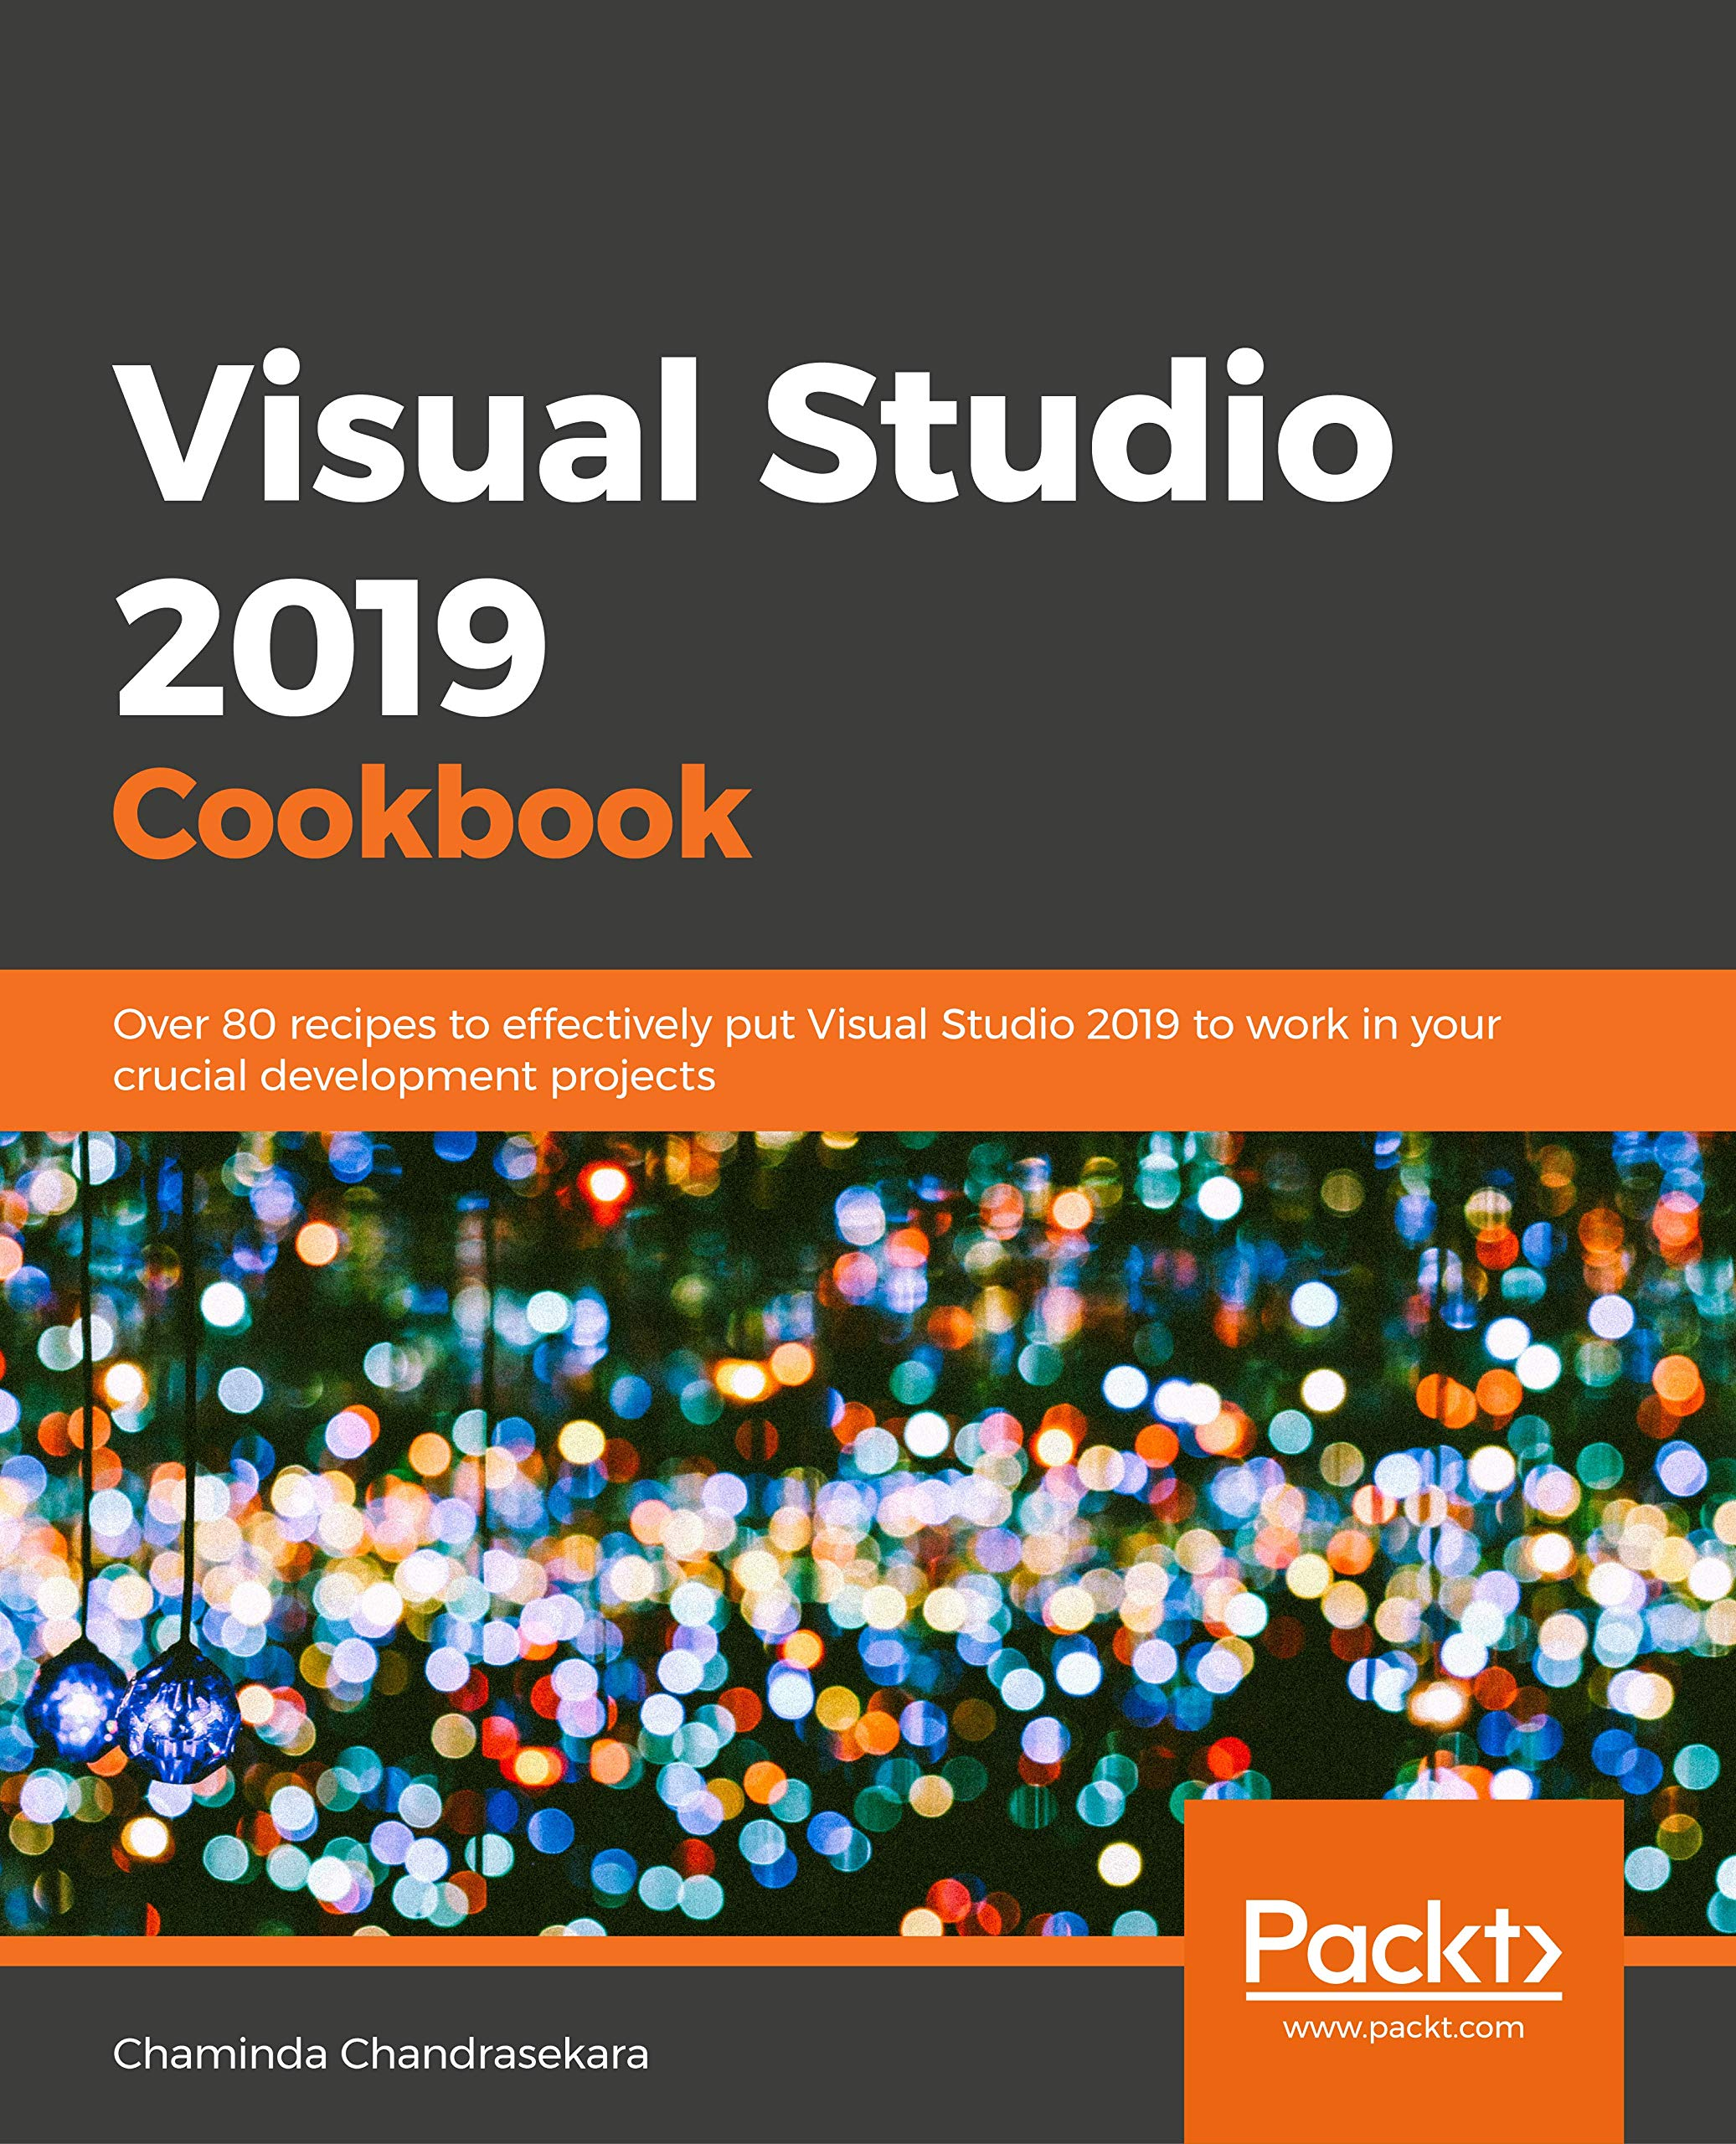 Visual Studio 2020 New Features Visual Studio 2019 Cookbook: Over 80 recipes to effectively put